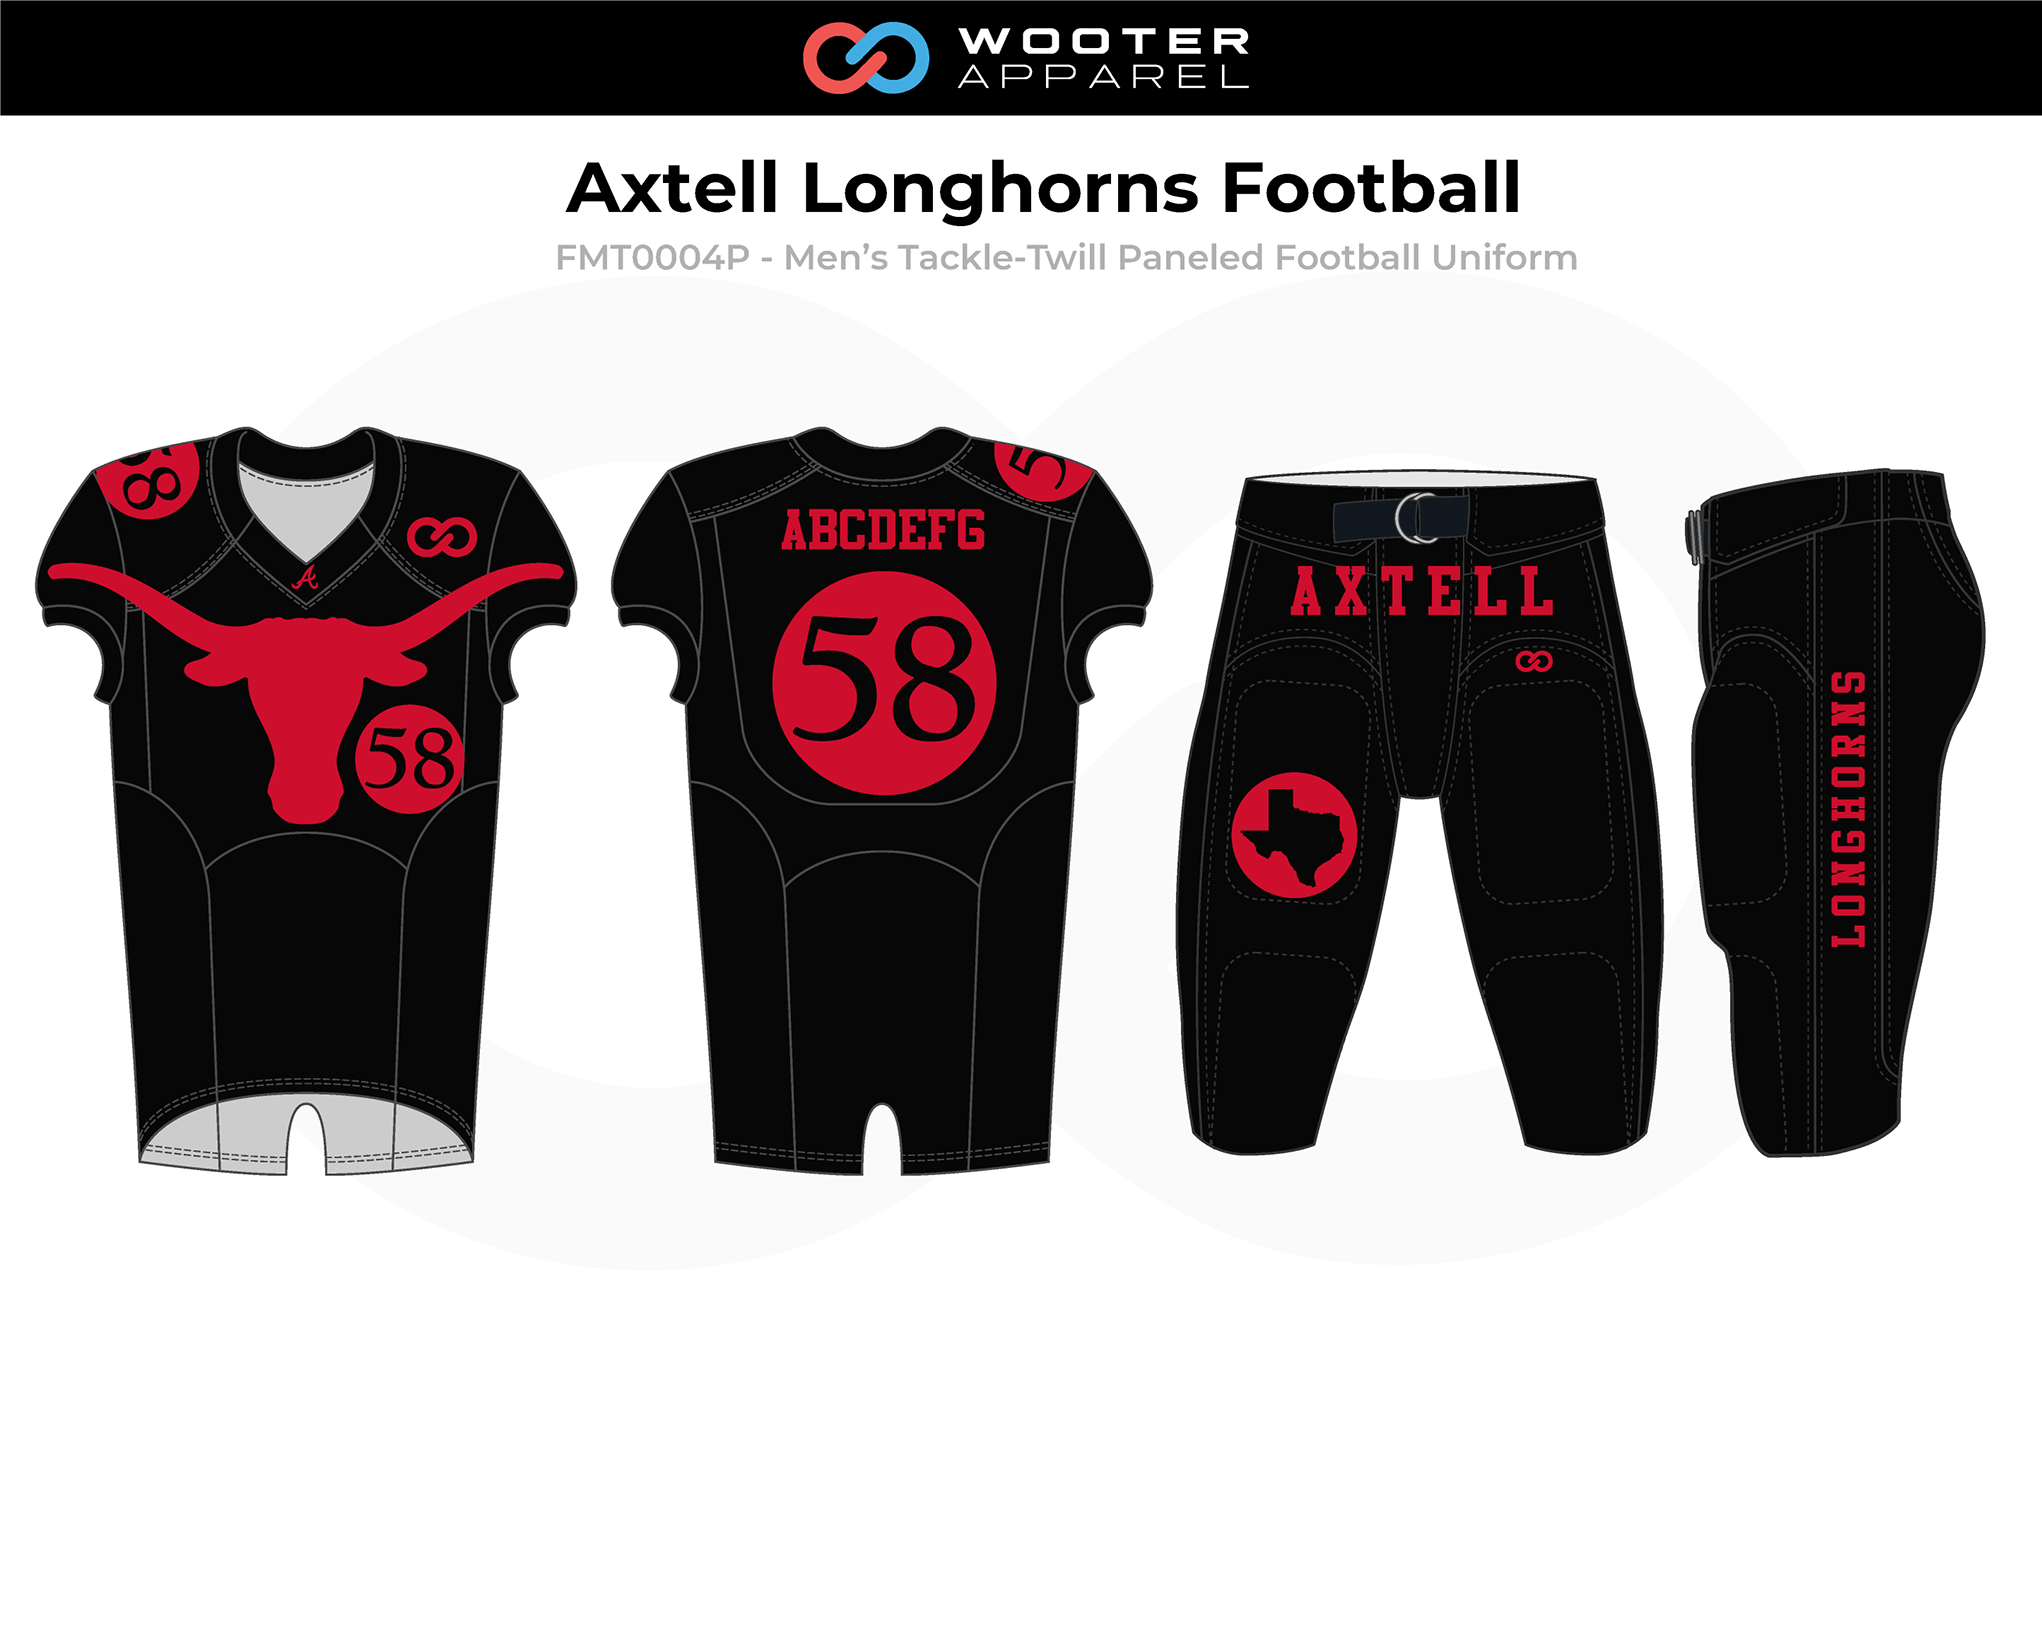 AXTELL LONGHORNS Red Black Men's Tackle-Twill Football Uniforms, Jerseys, and Pants